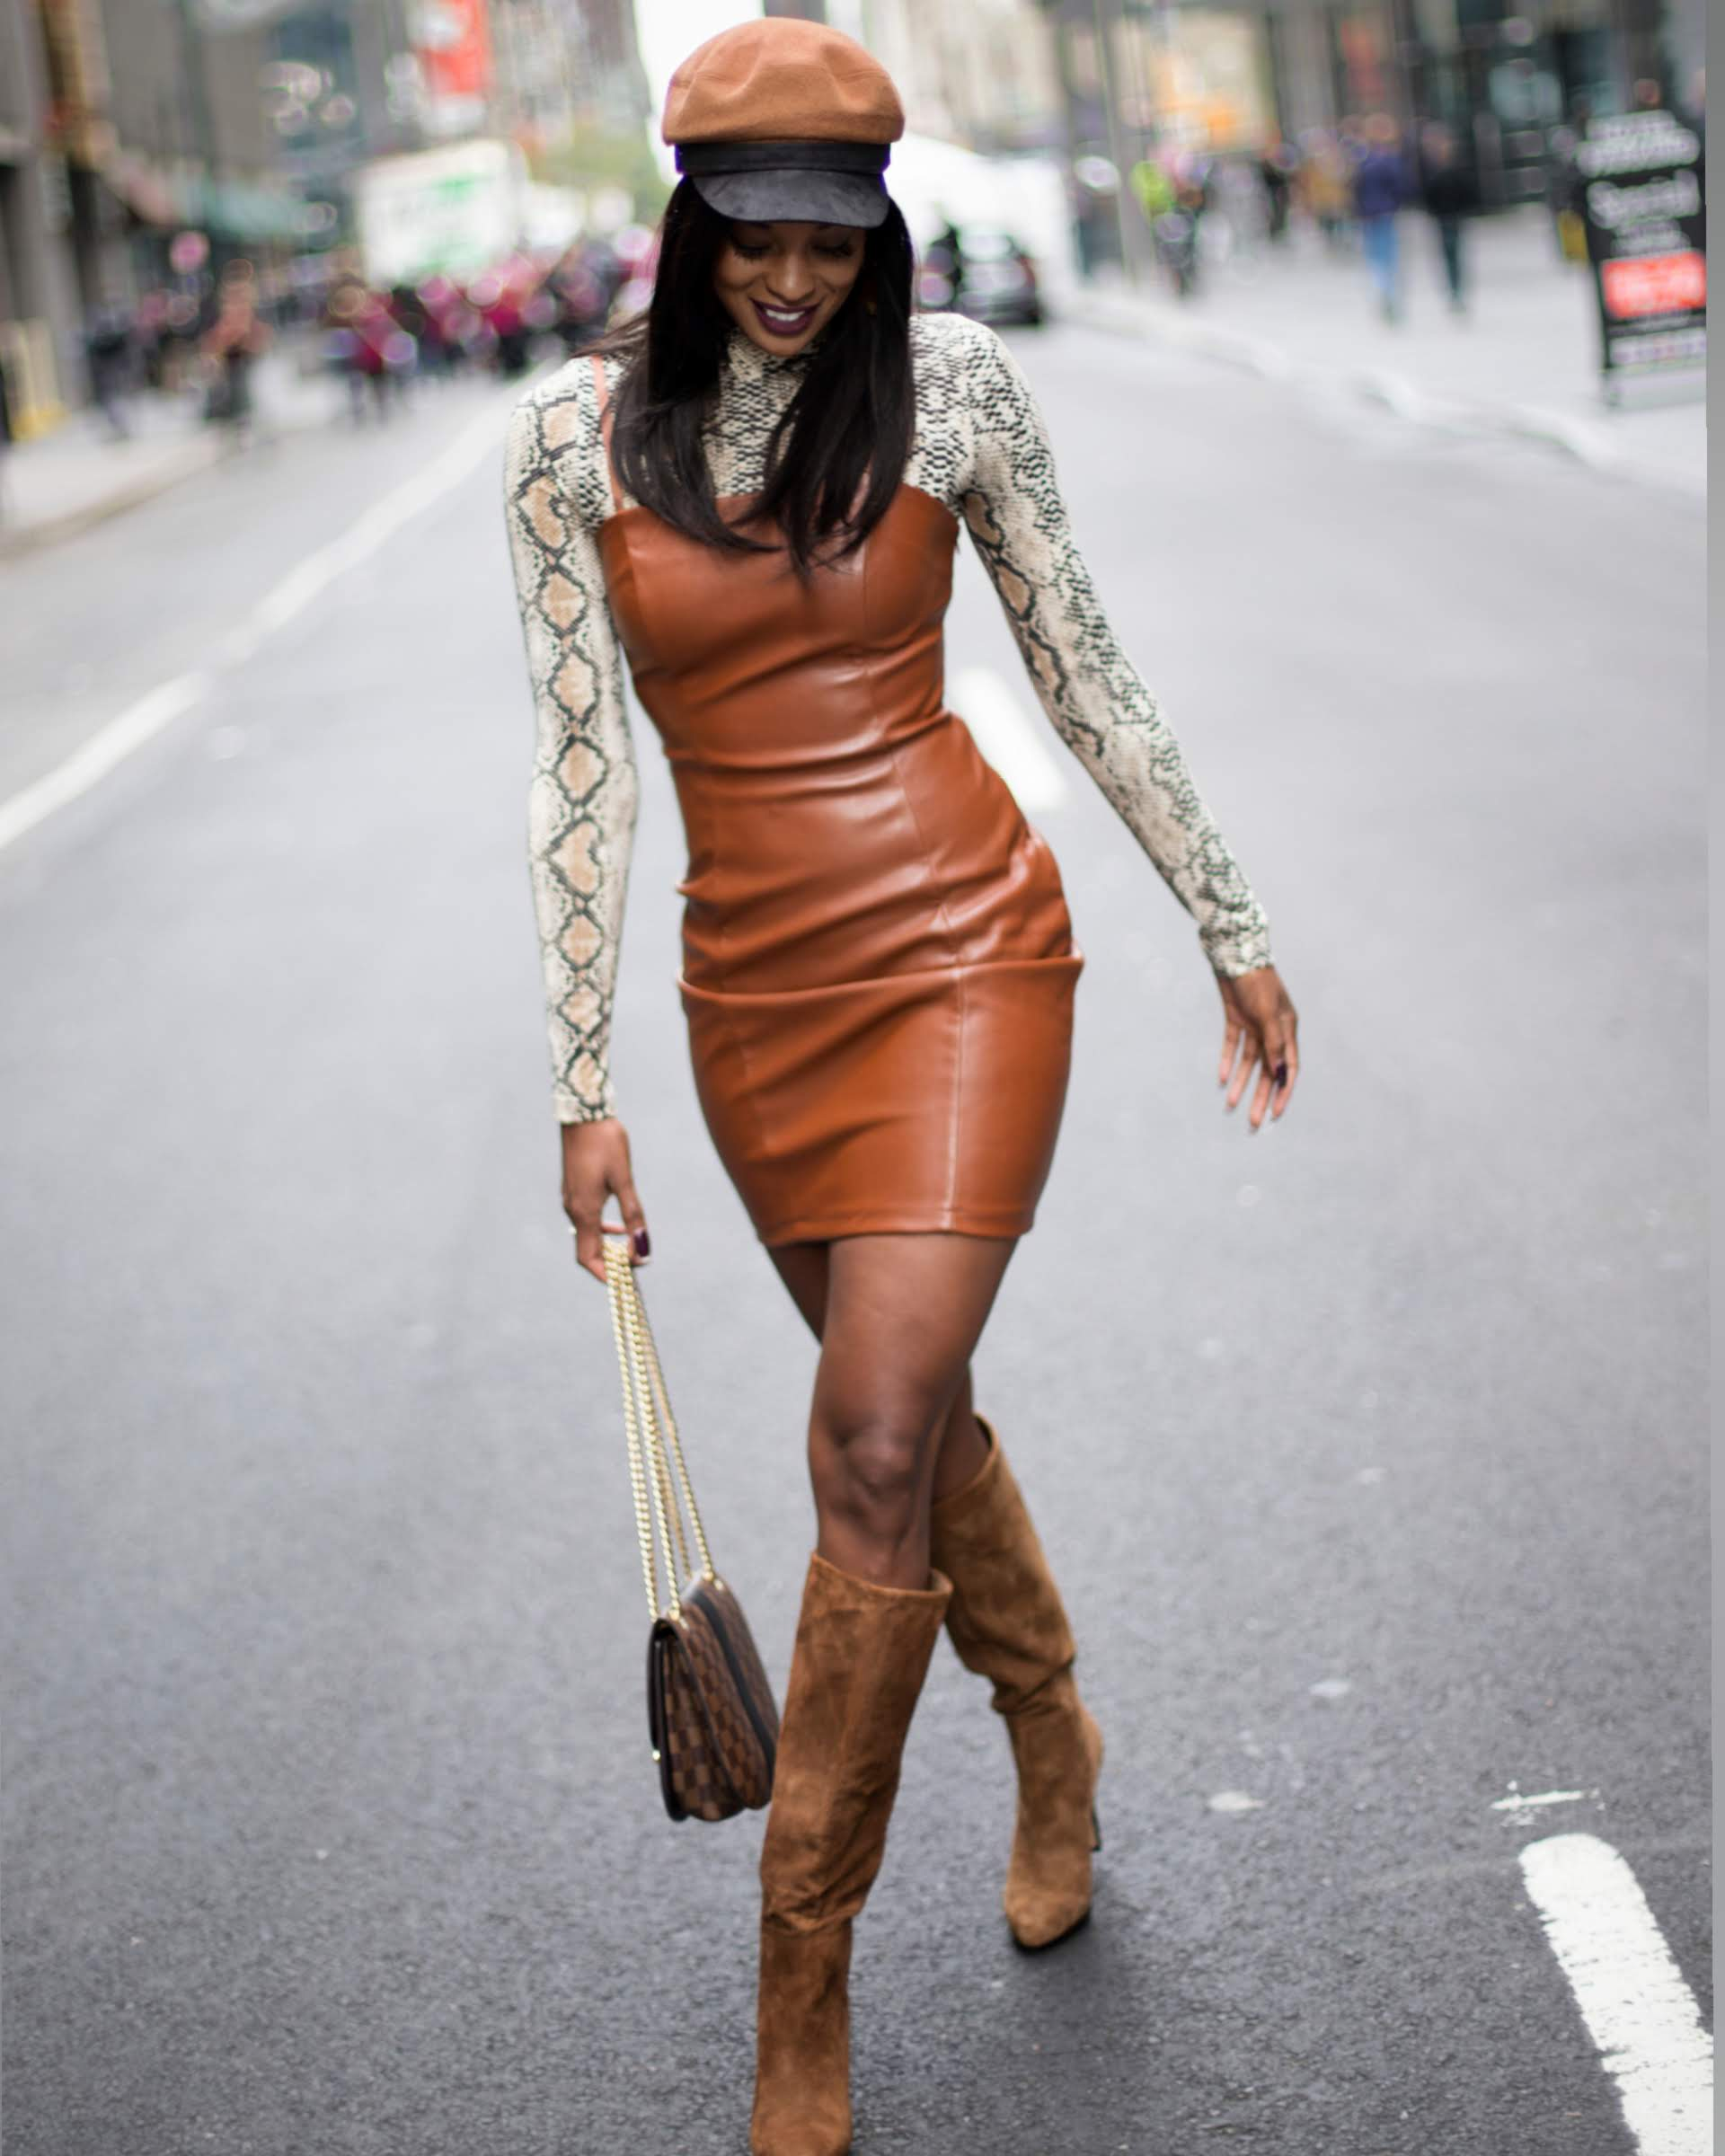 Girl wearing a brown dress, hat and knee high boots holding a purse in the middle of an NYC street